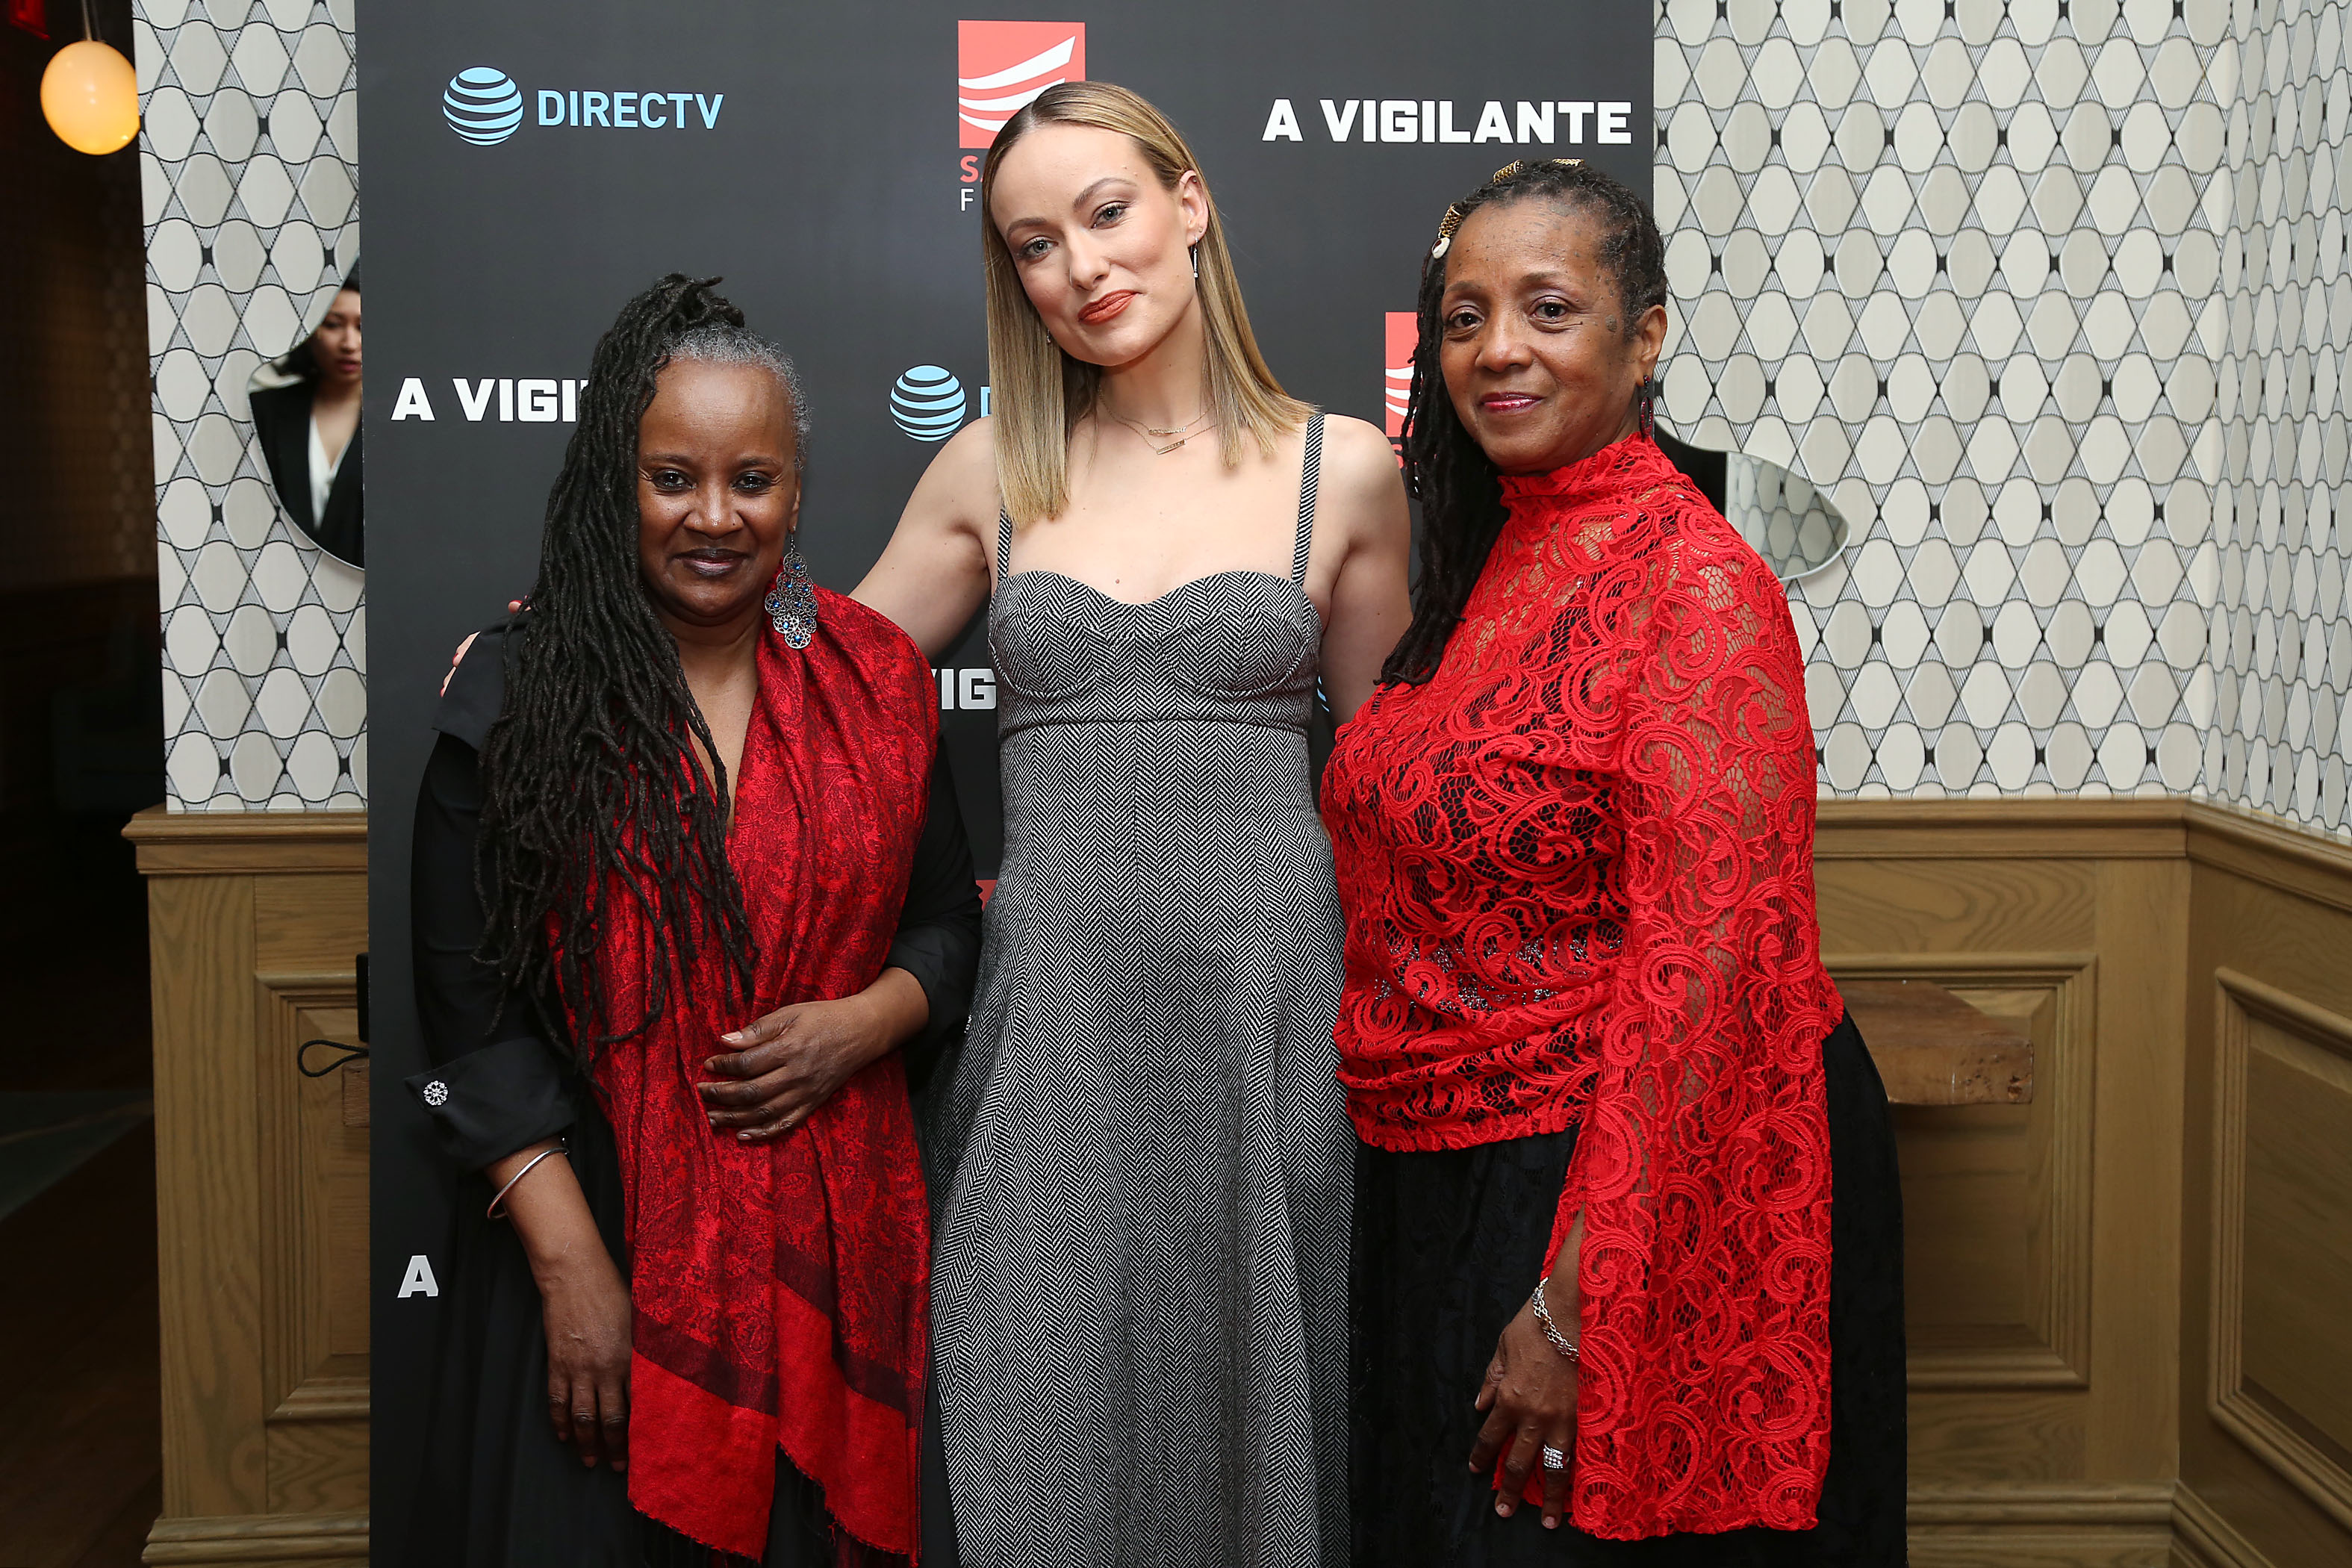 Beverly Atkinson (Assistant Program Director, Domestic Violence Program, Henry Street Settlement), Olivia Wilde, Theather Huggins (Housing Specialist, Domestic Violence Program, Henry Street Settlement) in front of step and repeat at event